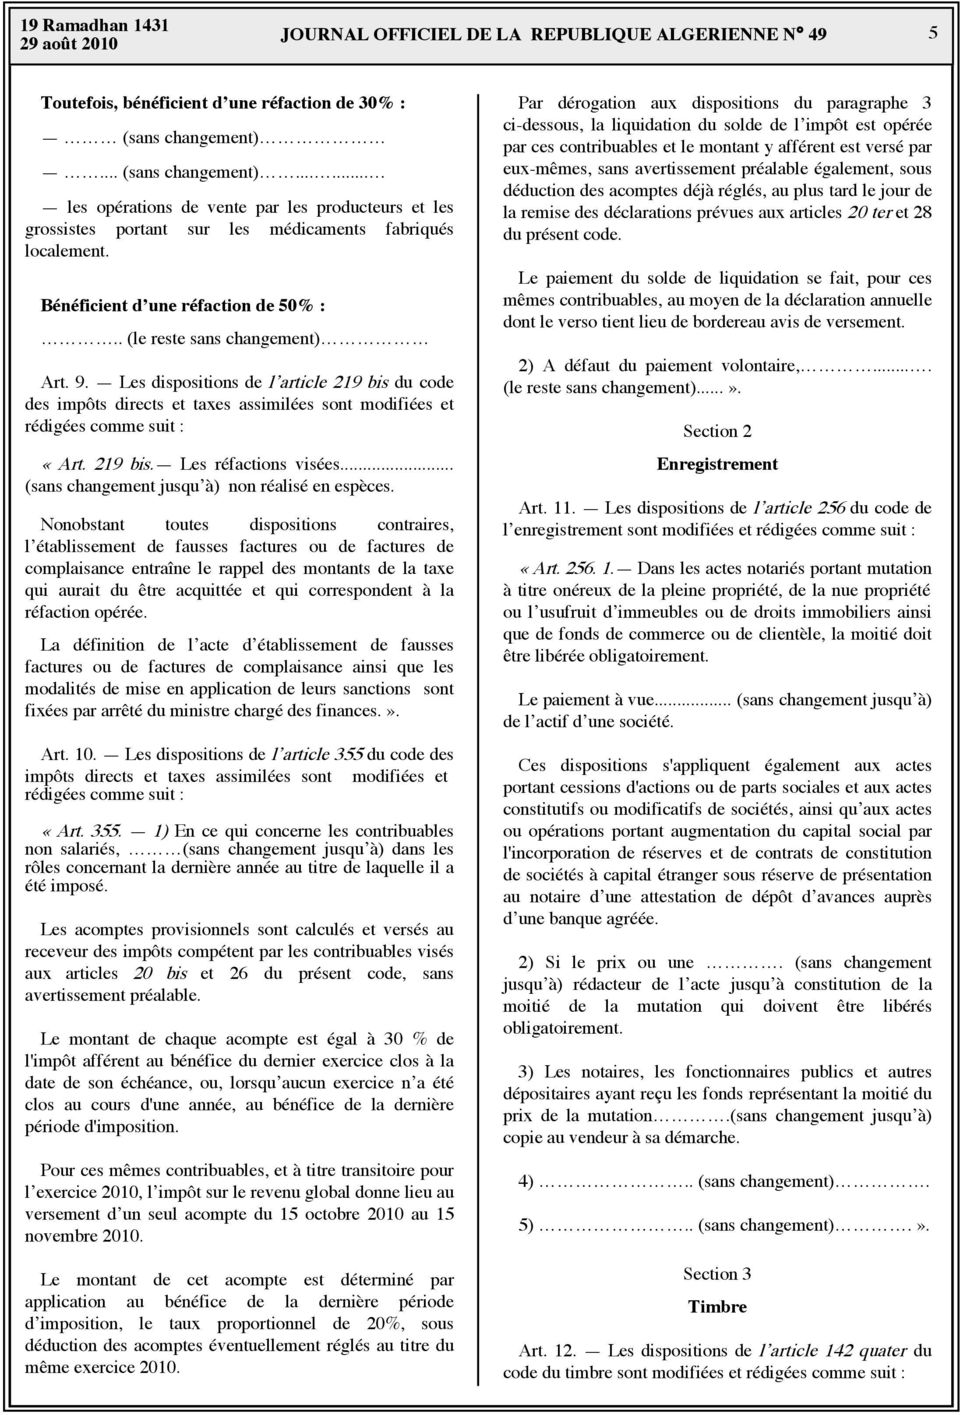 . (le reste sans changement) Art. 9. Les dispositions de l article 219 bis du code des impôts directs et taxes assimilées sont modifiées et rédigées comme suit : «Art. 219 bis. Les réfactions visées.